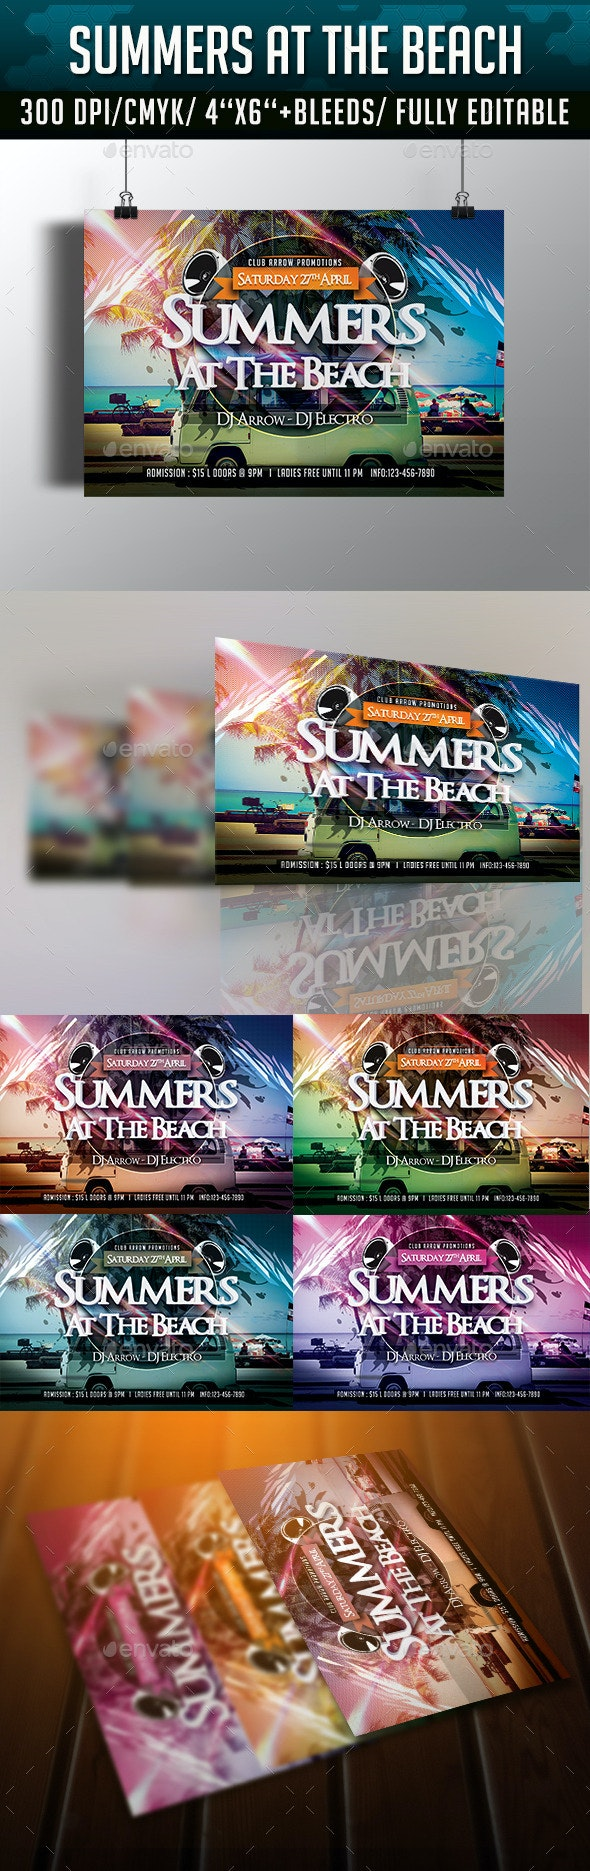 Summers at the Beach Flyer Template - Clubs & Parties Events